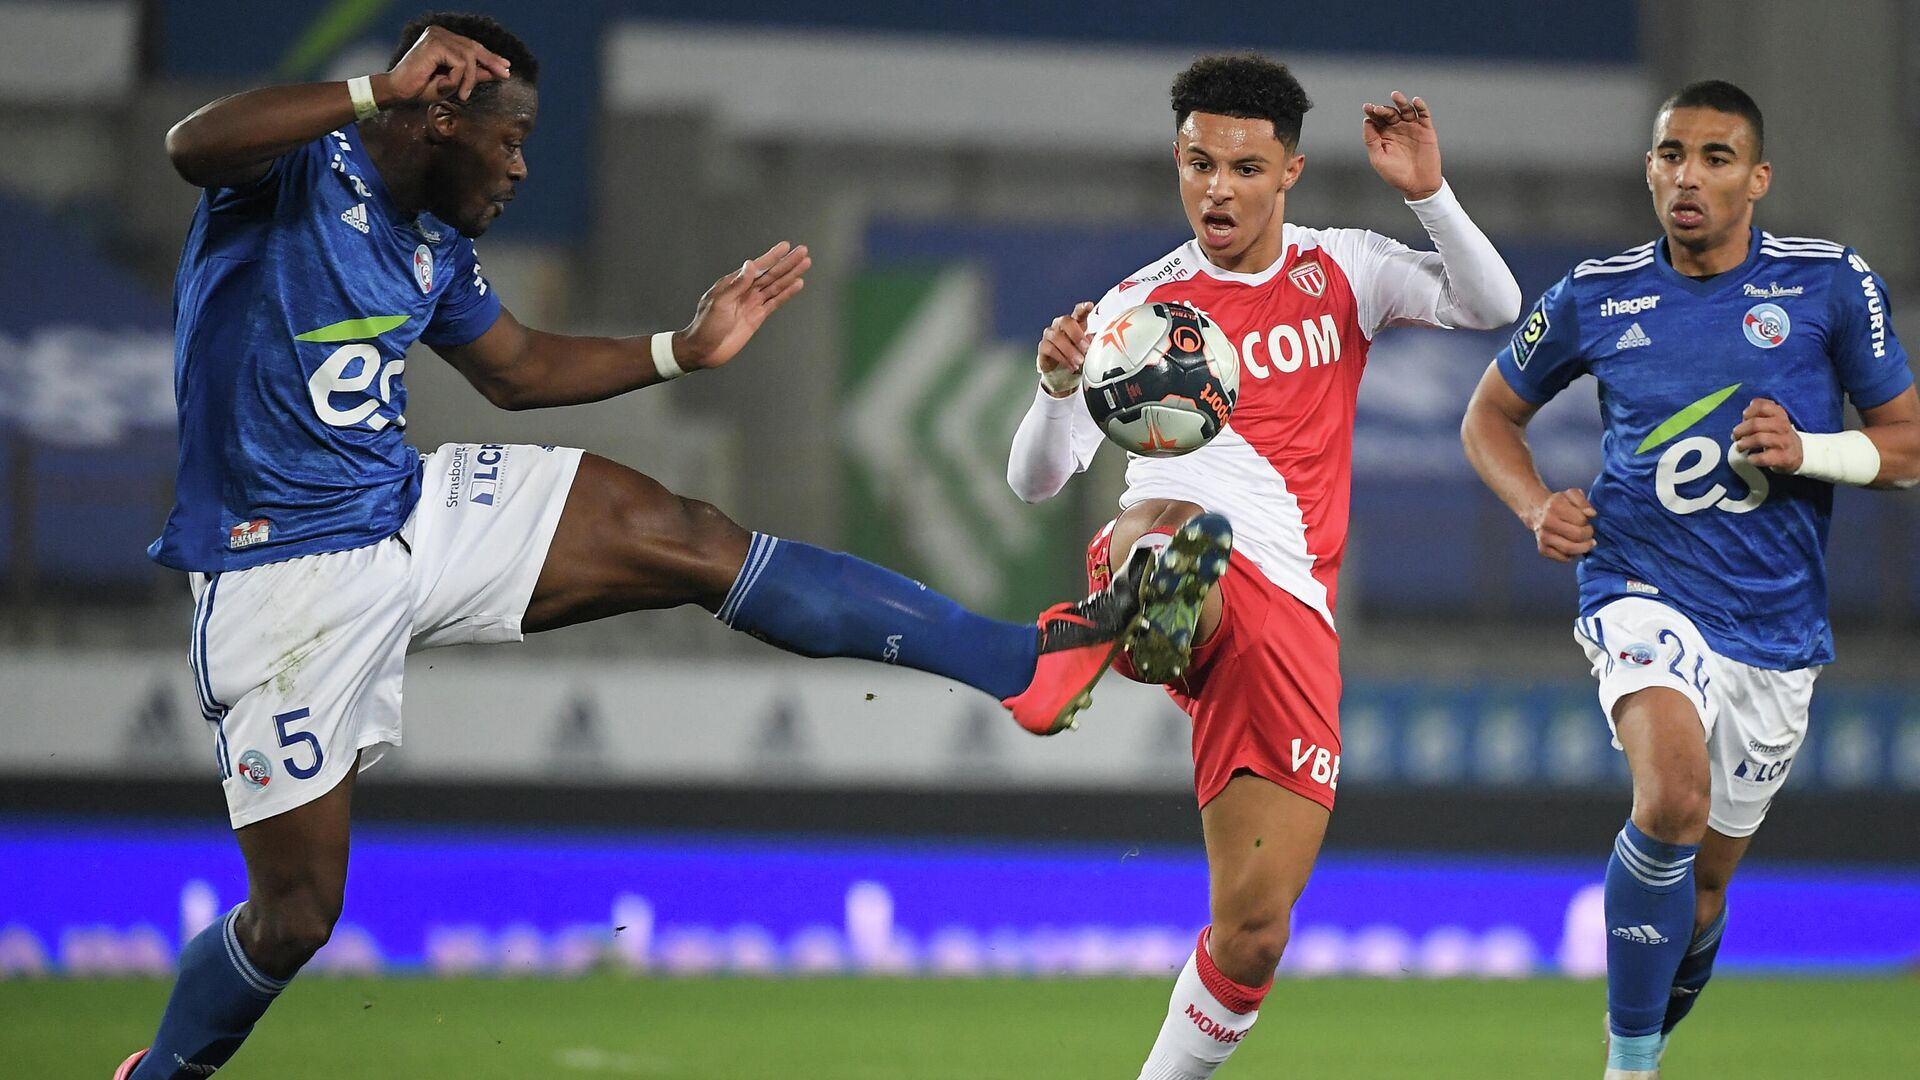 Monaco's French midfielder Sofiane Diop (C) fights for the ball with Strasbourg's Ivorian defender Lamine Kone (L) during the French L1 football match between Racing Club Strasbourg Alsace and AS Monaco at the Meinau stadium in Strasbourg, eastern France on March 3, 2021. (Photo by Frederick FLORIN / AFP) - РИА Новости, 1920, 04.03.2021